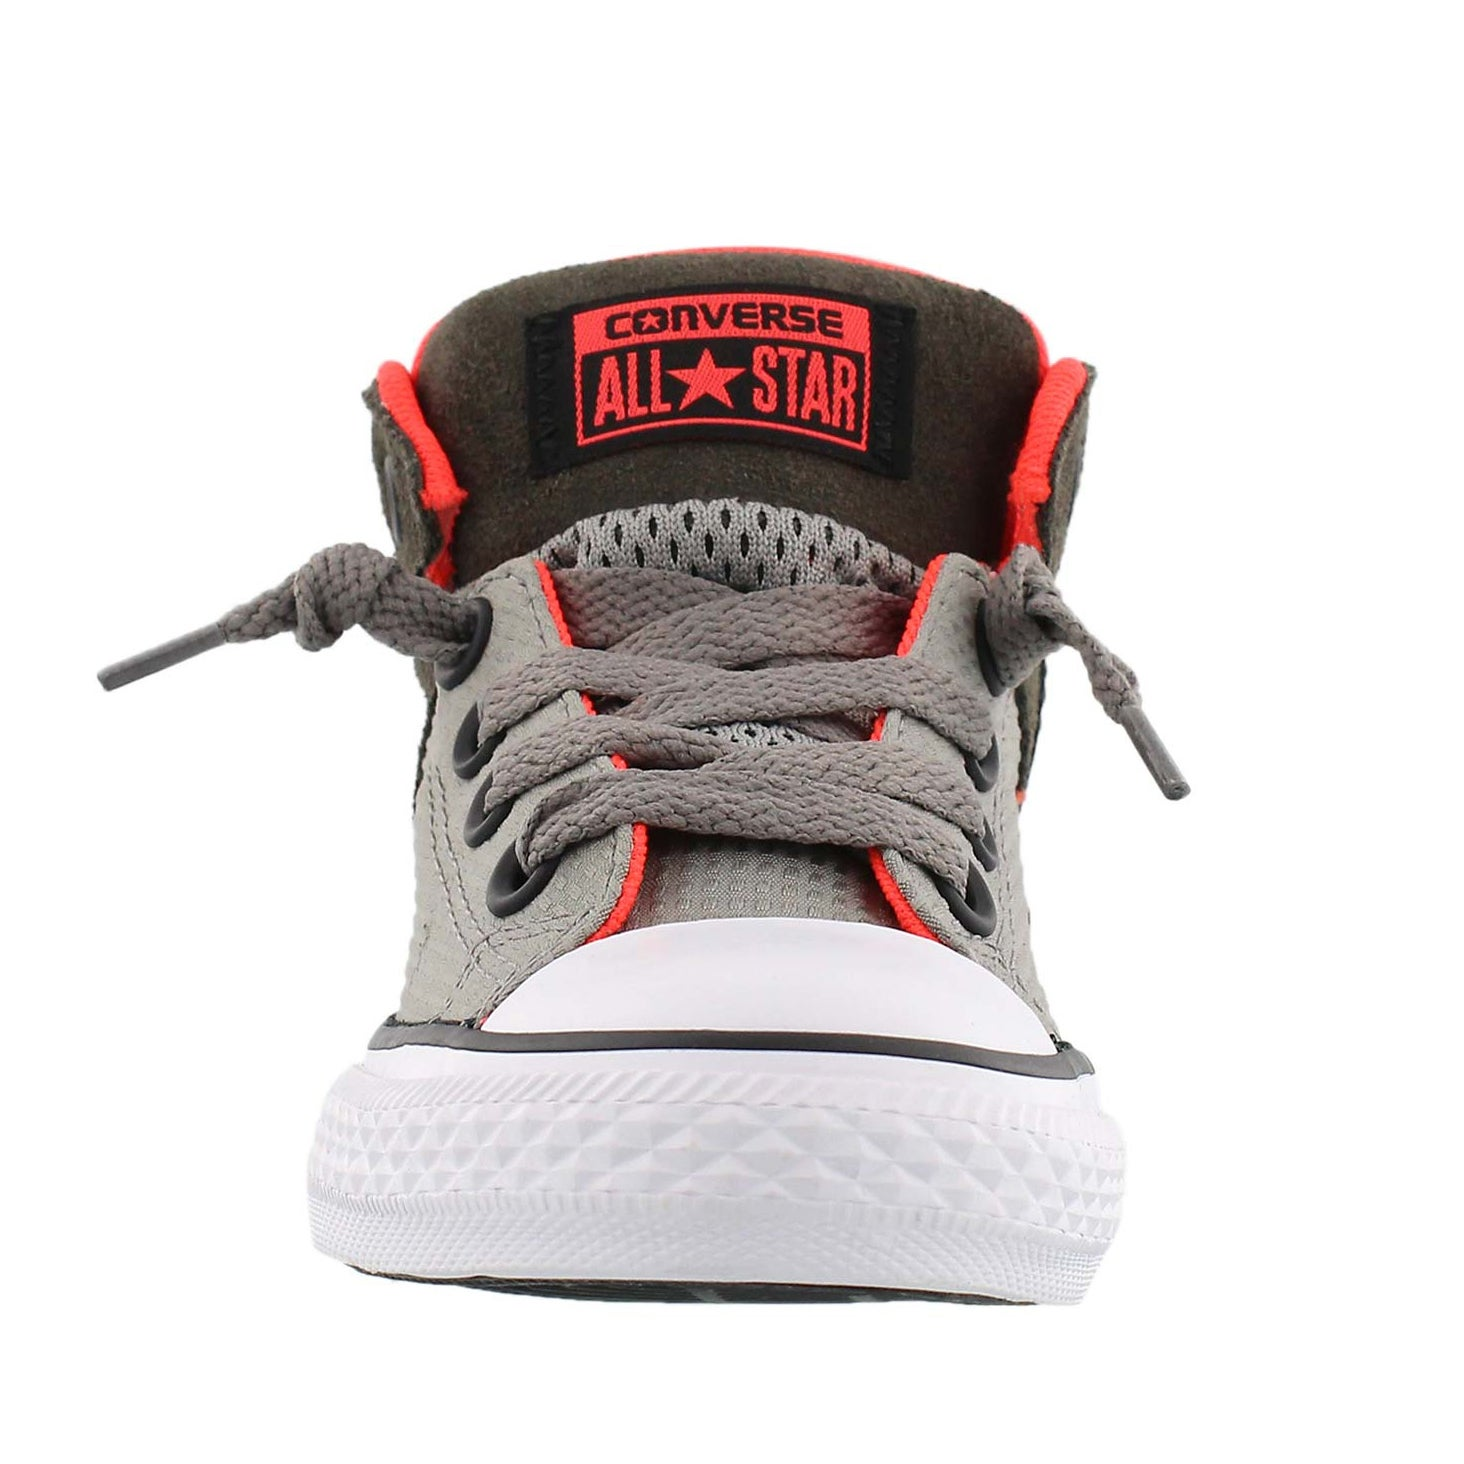 Bys AxelMid RipStop gry/crimson sneaker